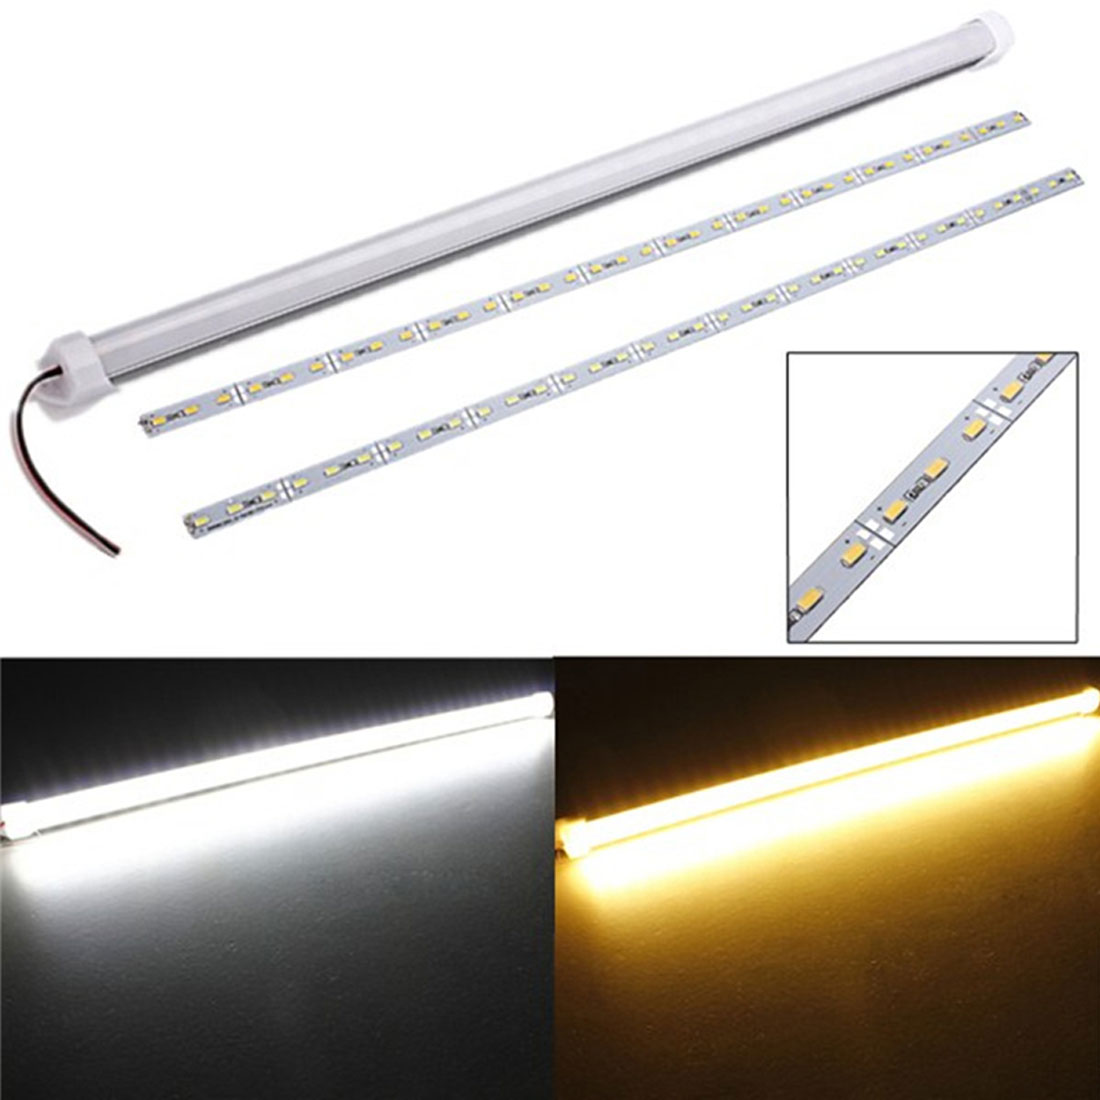 11W 50cm Hard Rigid Light Strip Cabinet LED Bar Lamp Strip 36 LED 5630 SMD Pure White / Warm White Light With Cover